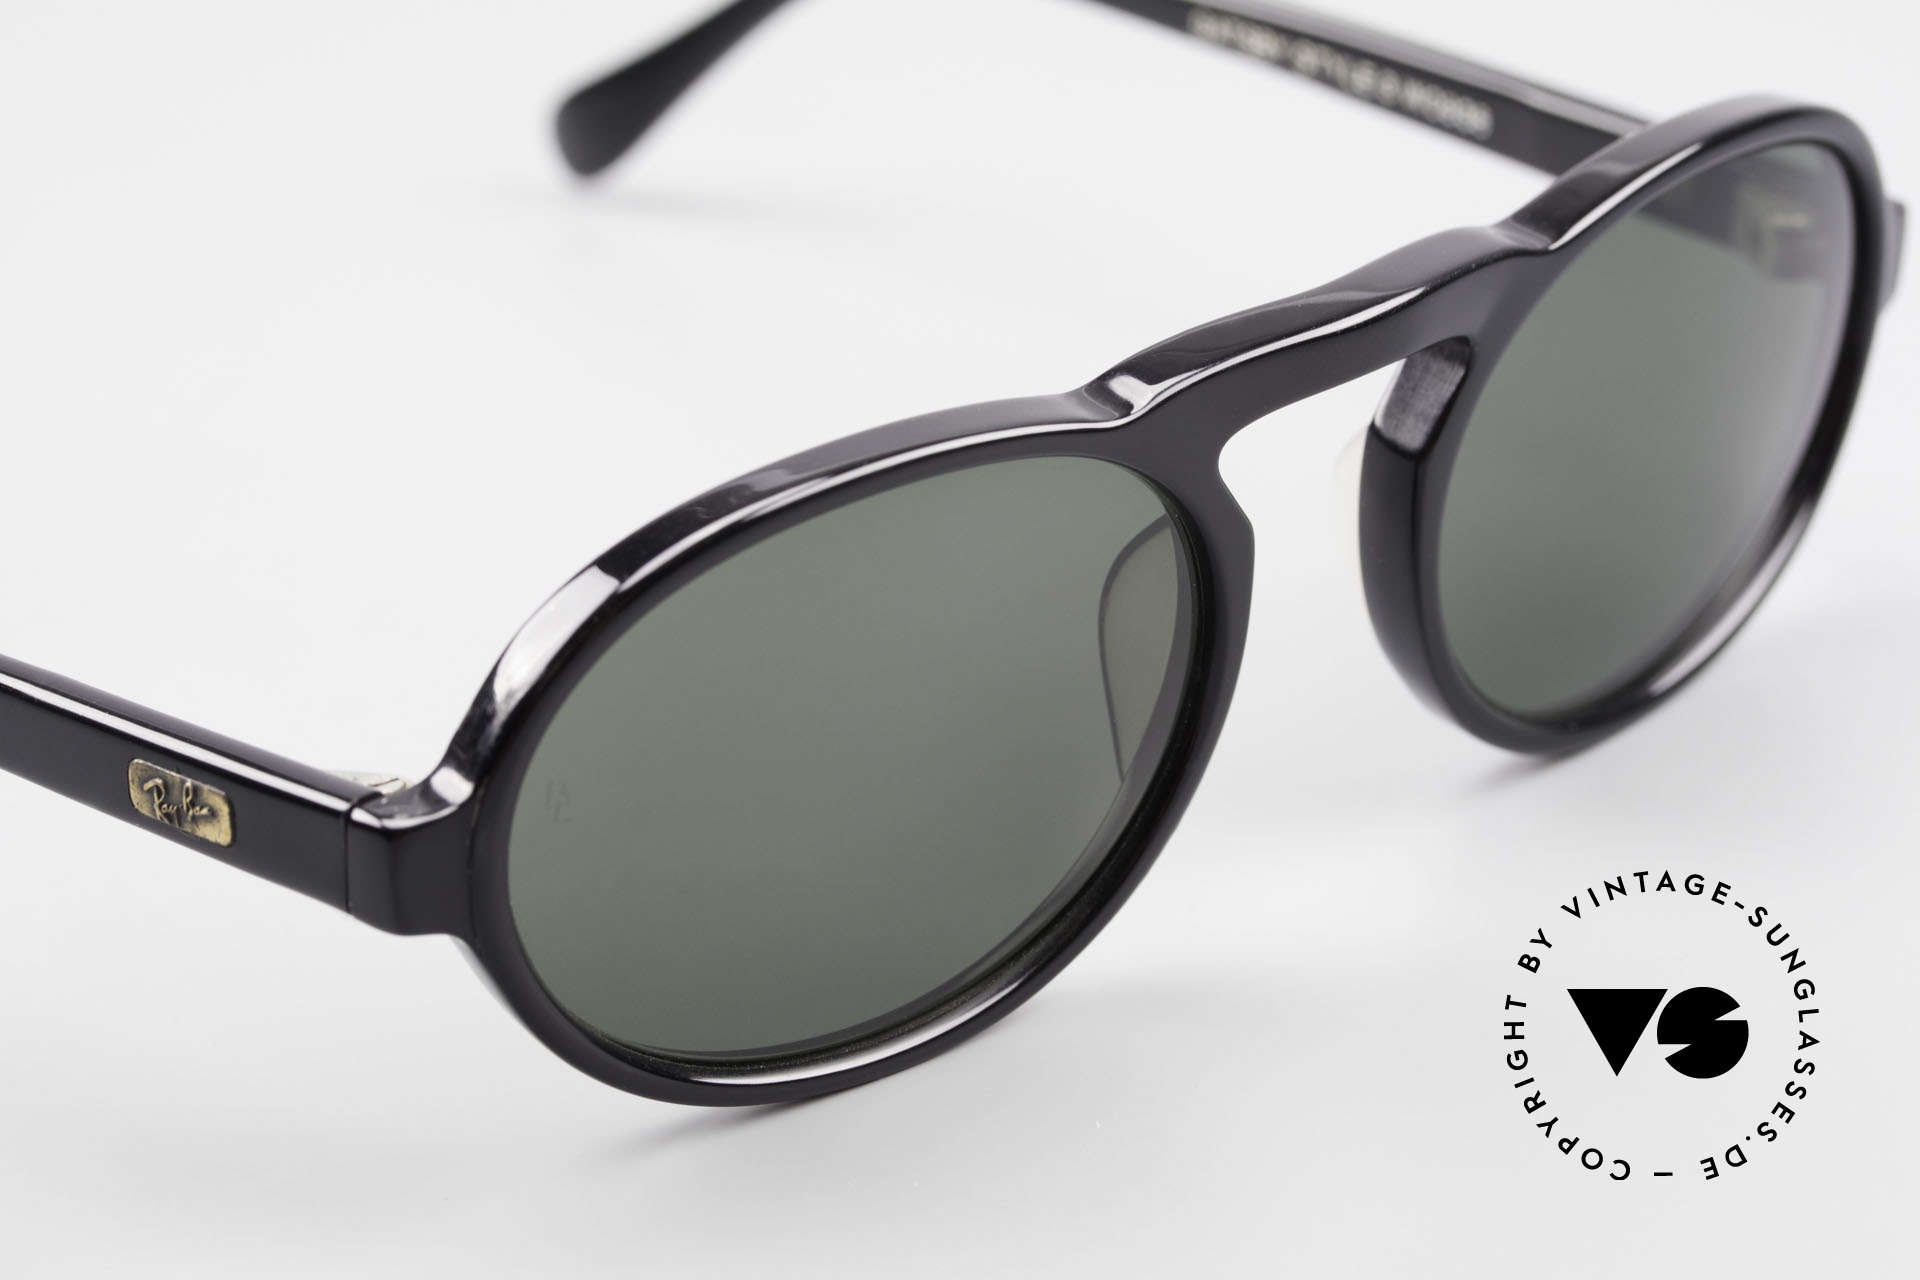 Ray Ban Gatsby Style 3 Old Oval USA Ray-Ban Shades, NO retro sunglasses, but an old USA-original, Made for Men and Women